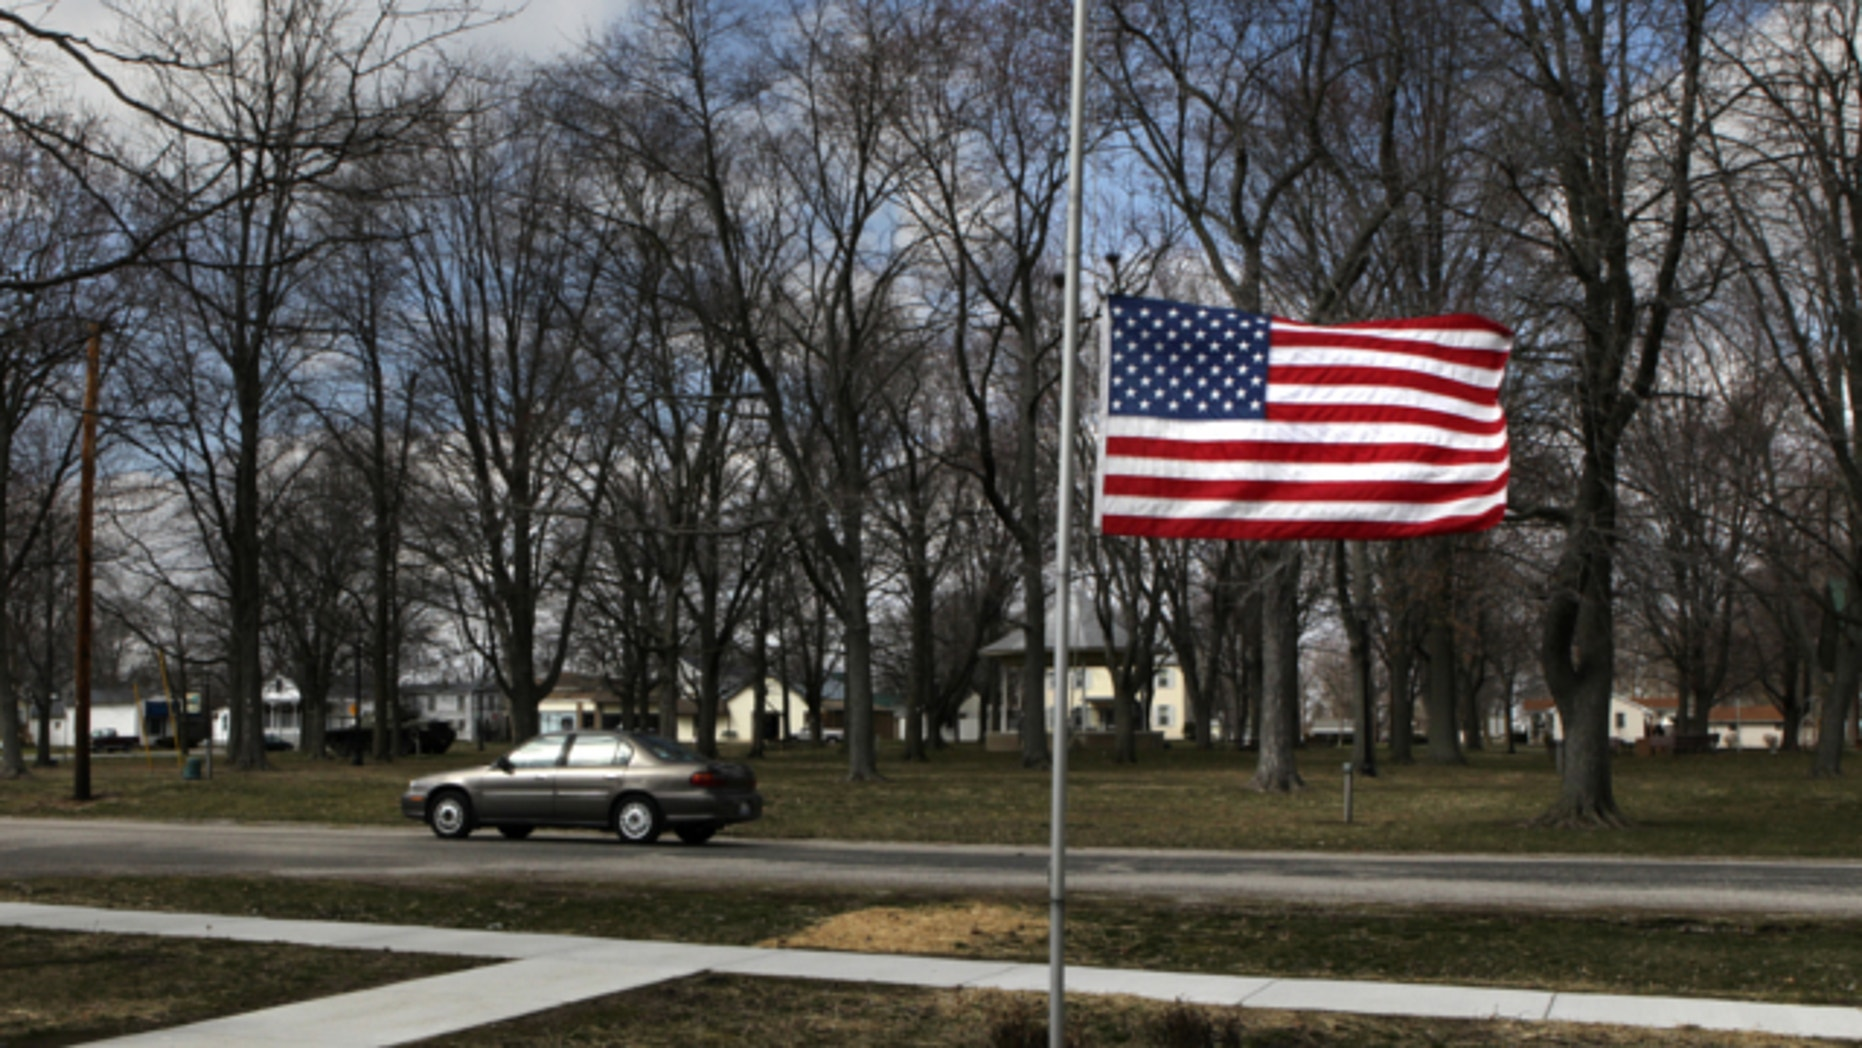 March 20, 2013: Marine Aaron Ripperda of Highland, Ill. is remembered with flags at half mast in nearby downtown Marine, Ill., where his father lives.